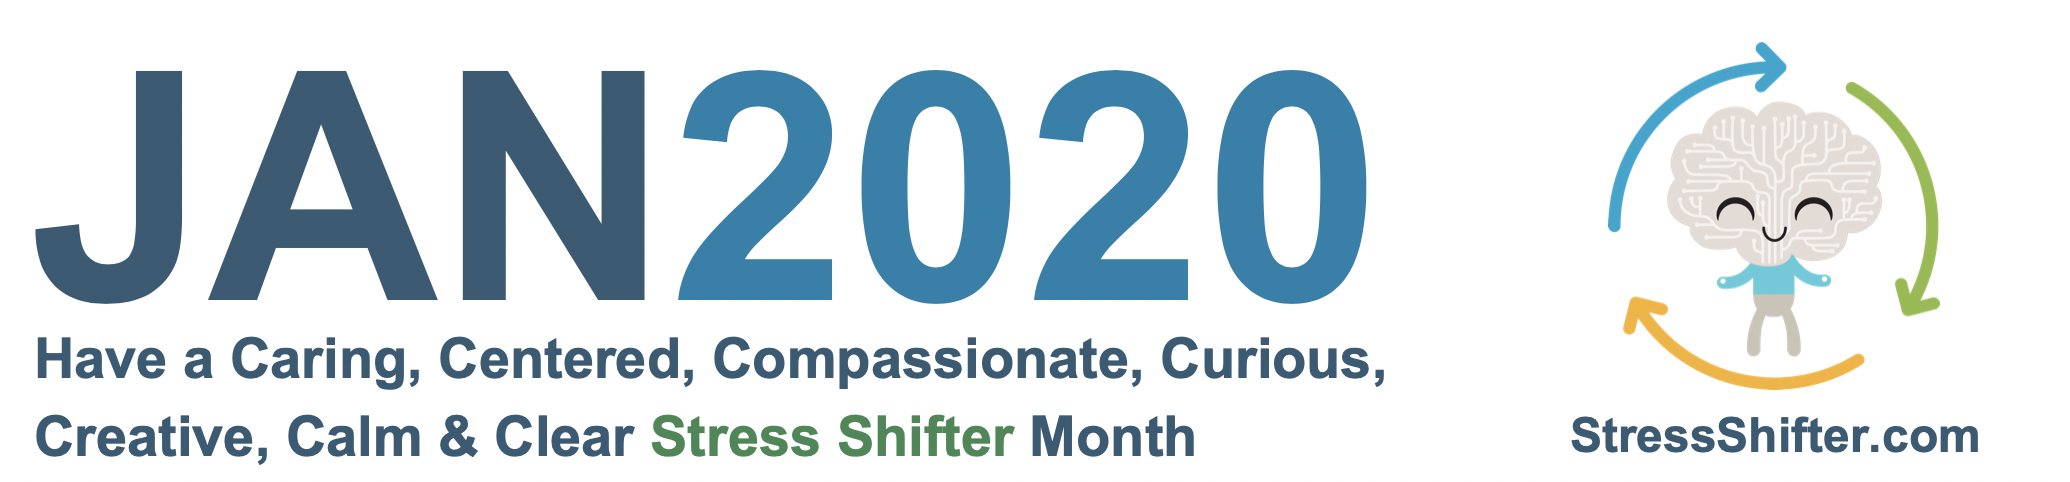 Stress Shifter's January Newsletter 2020